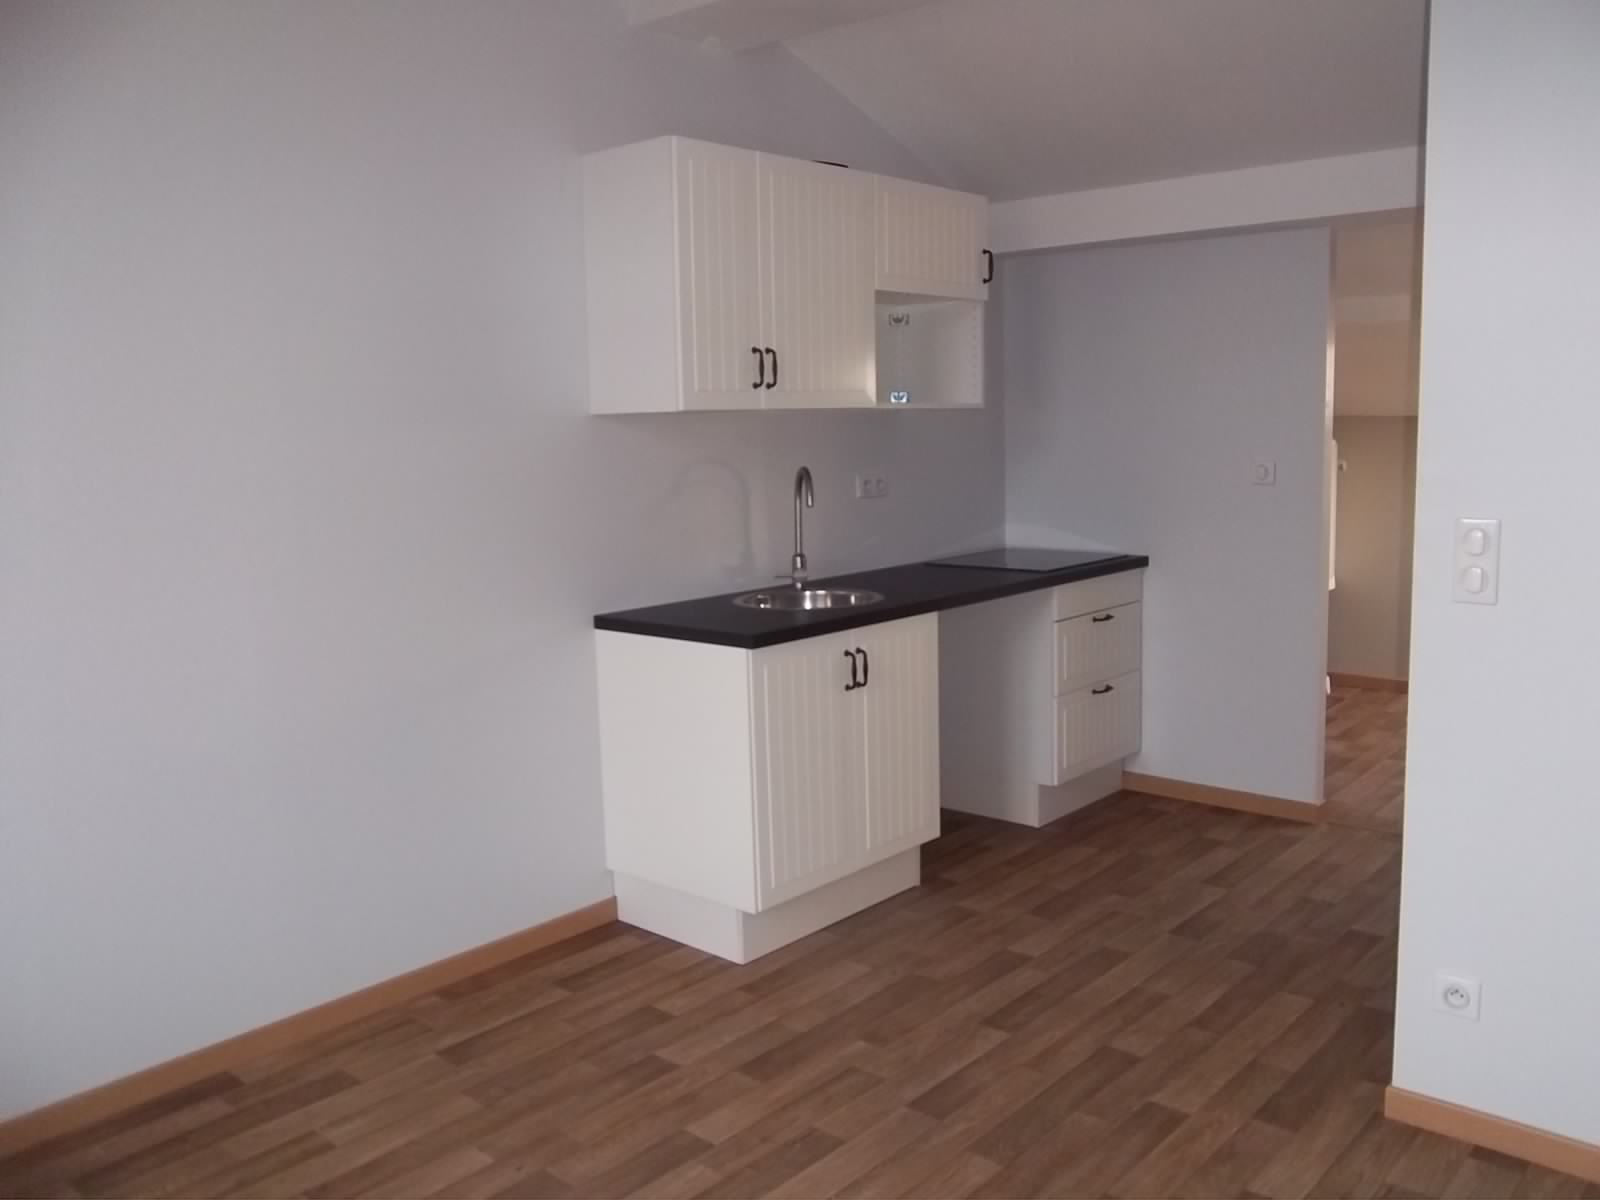 Location tudiant appartement t2 centre ville for Chambre crous lille